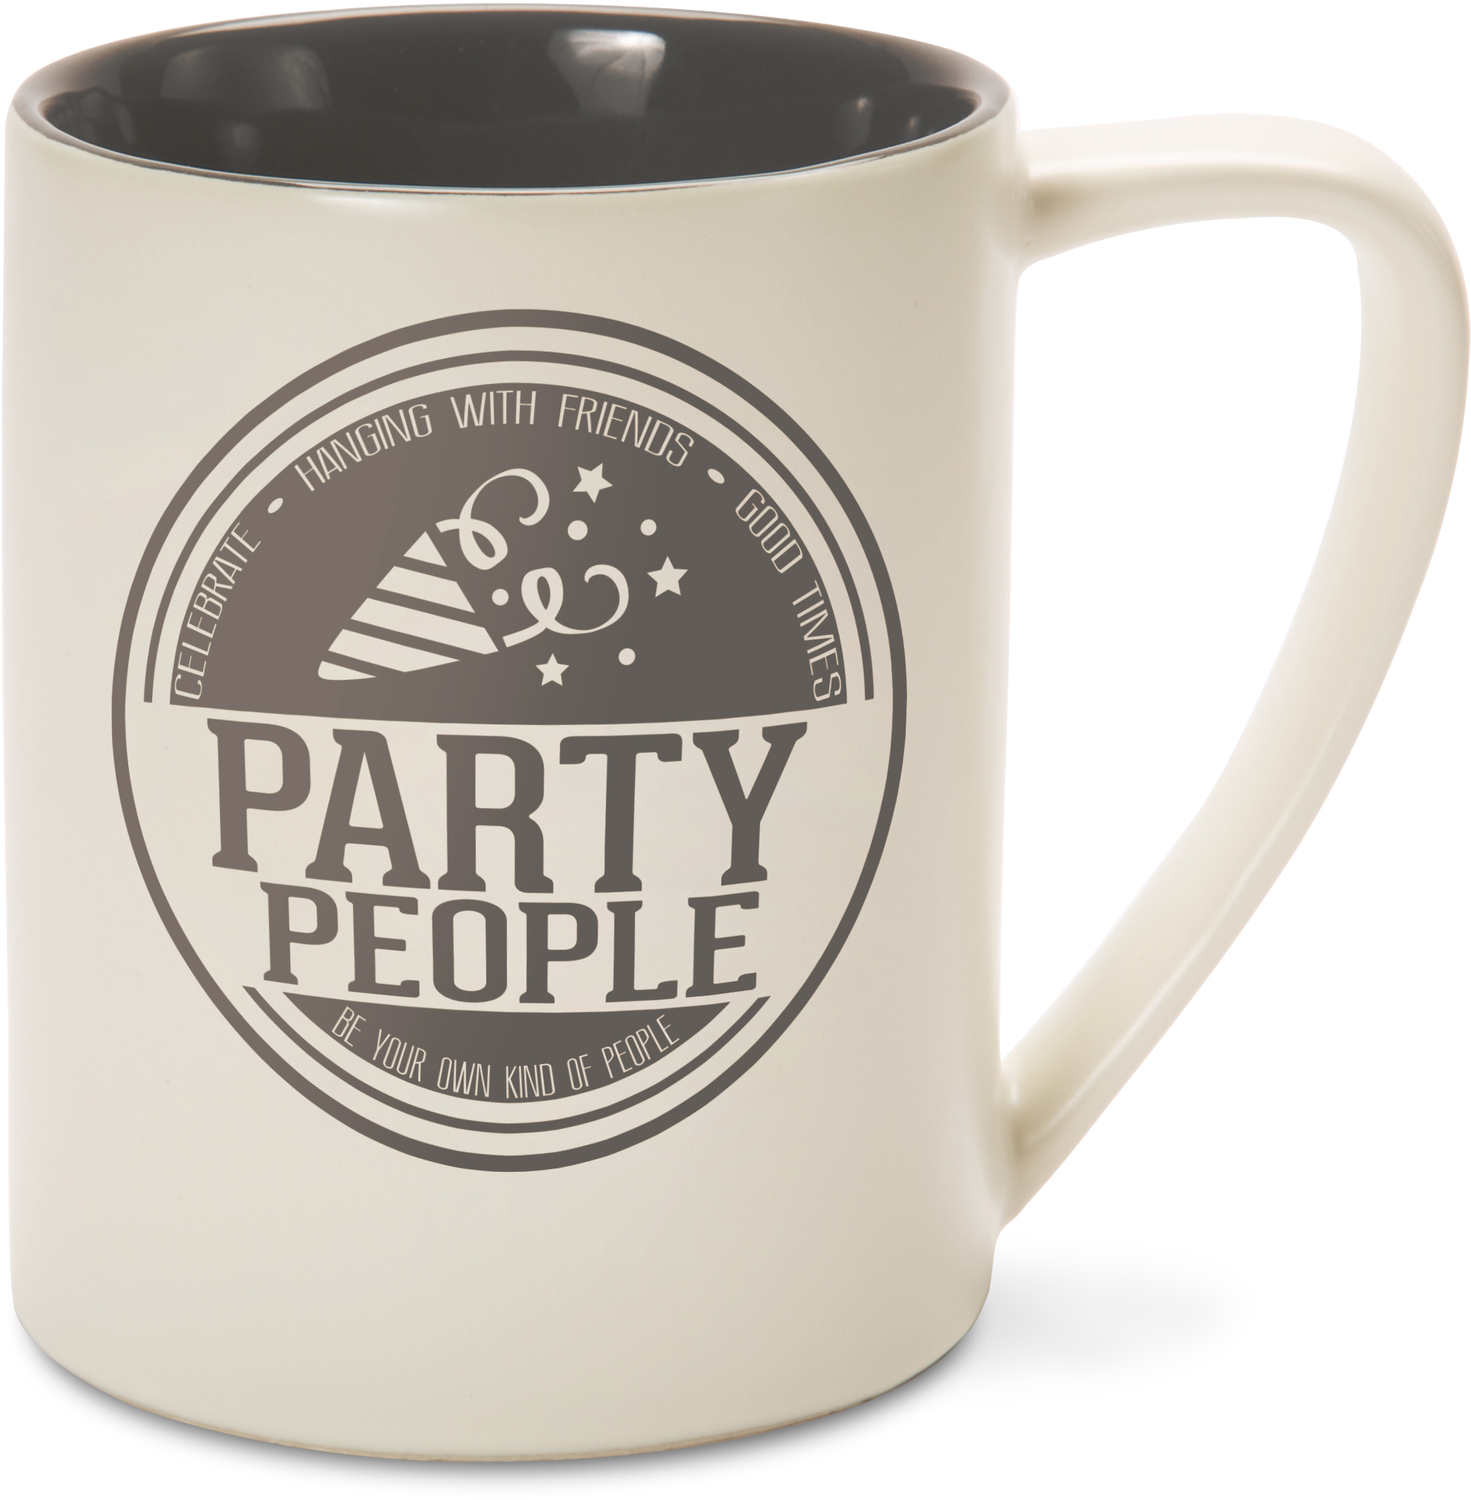 Party People by We People - Party People - 18 oz Mug